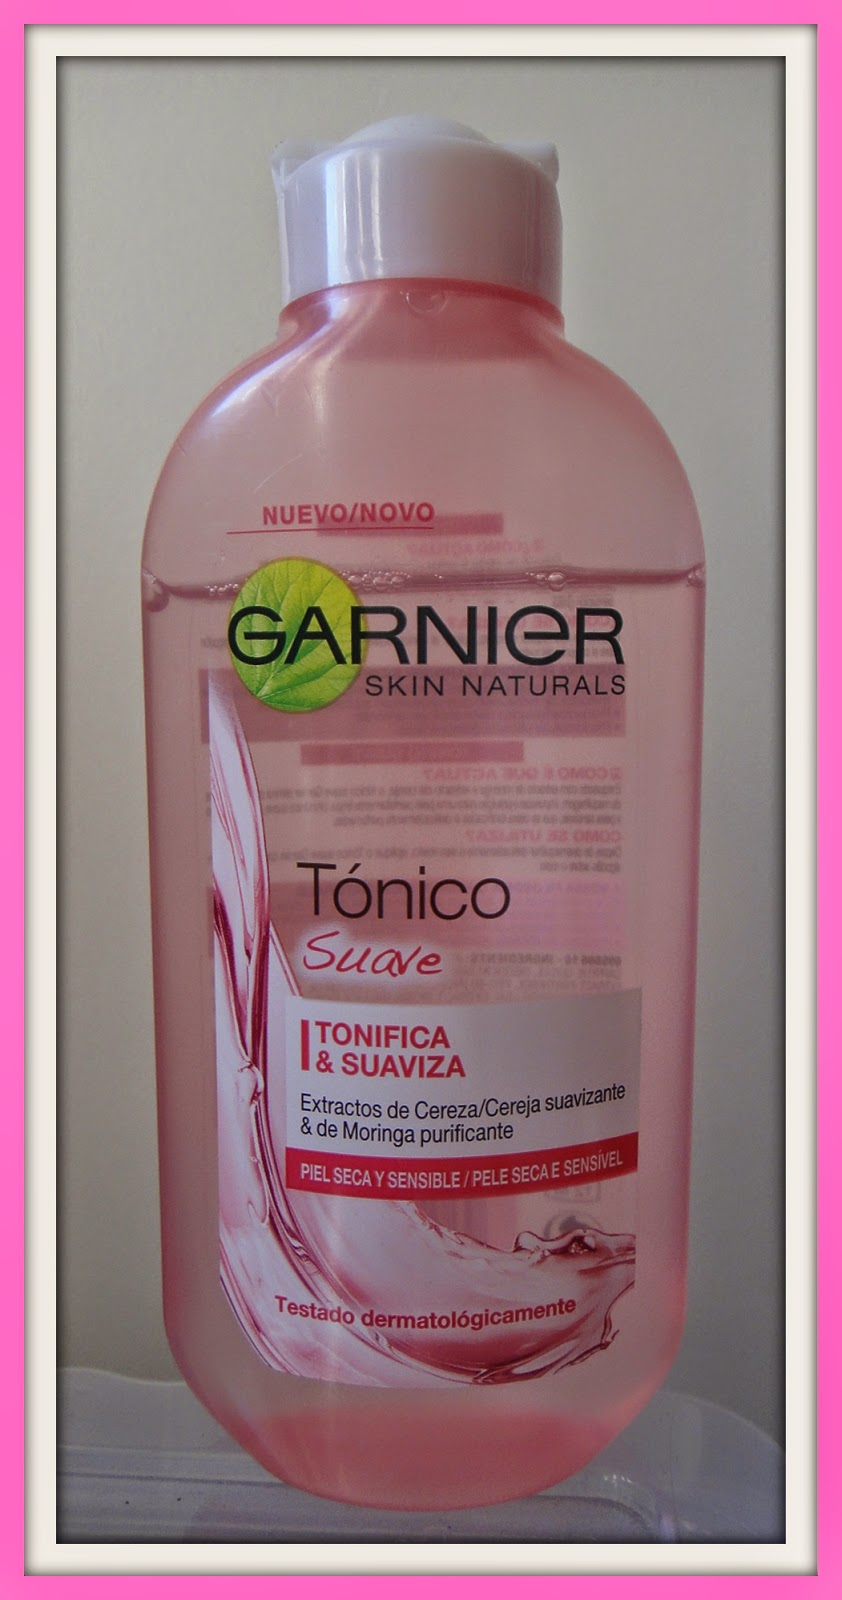 3b2fc04939a7ea Review: Tónico Suave Garnier - Must Be...Pink!